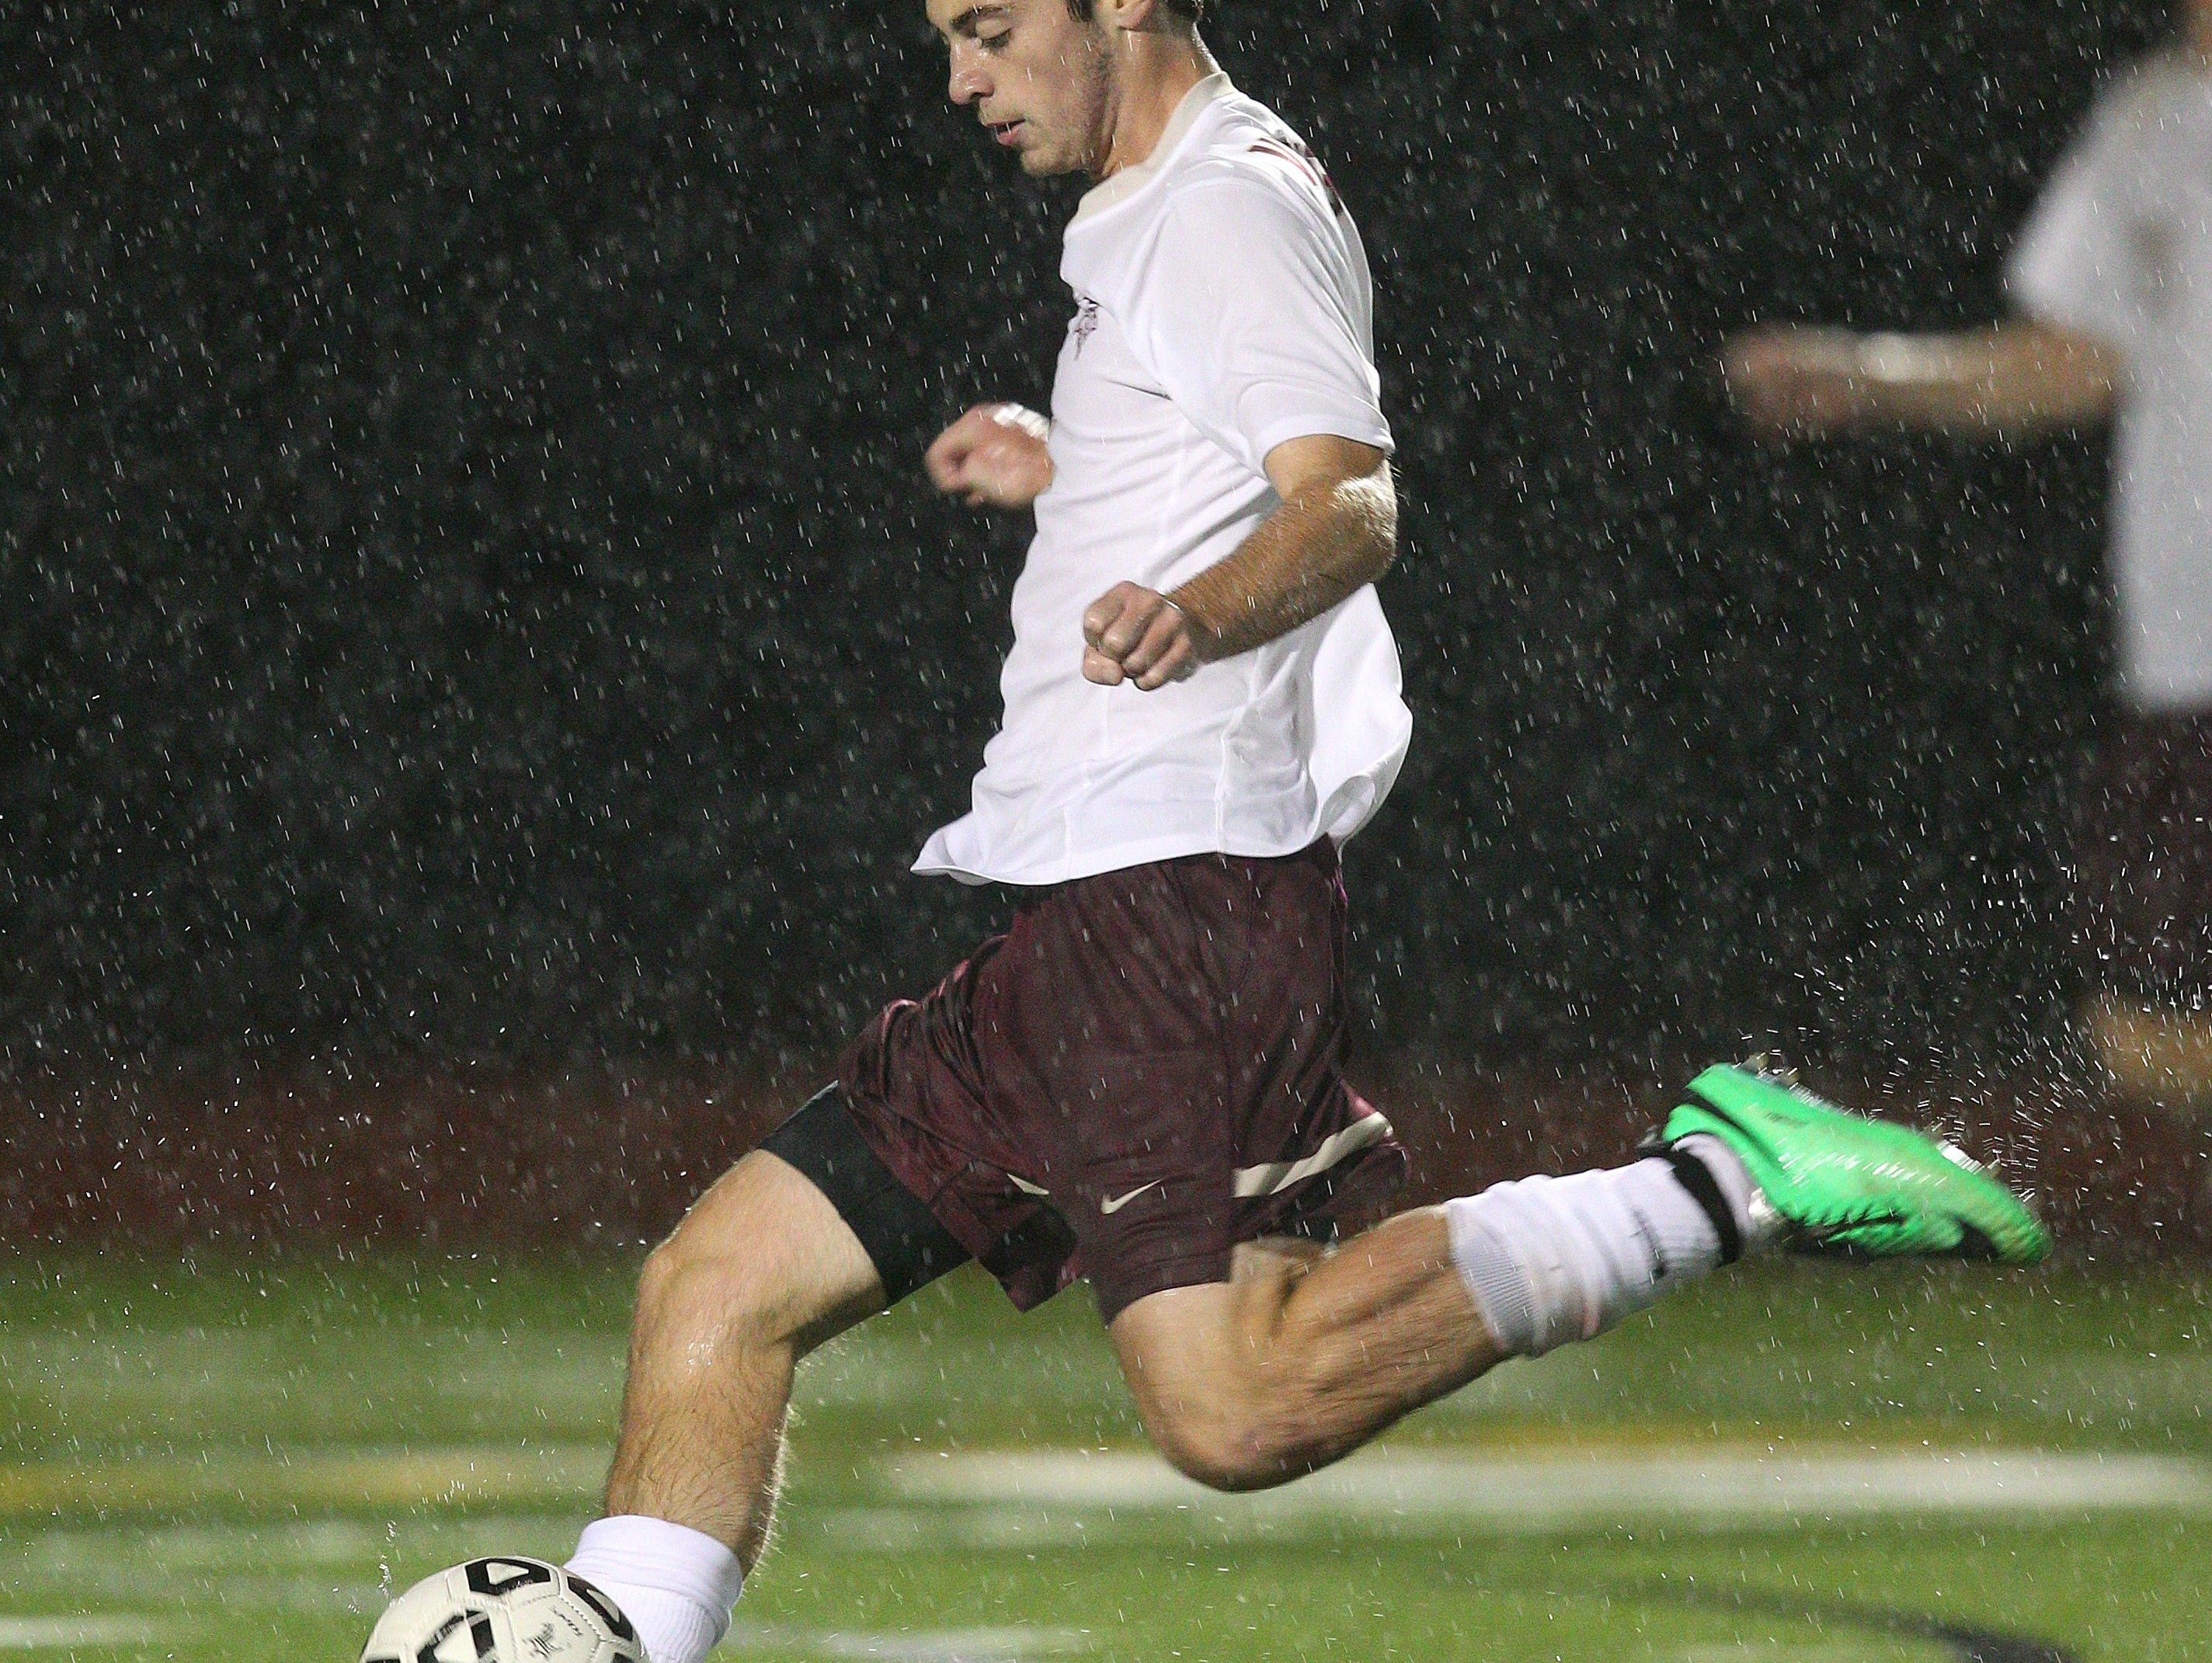 Pittsford Mendon graduate Ryan Aspenleiter was the team's No. 9 captain this past season. The distinction is in honor of Mendon graduate Todd Pelino , who died during the World Trade Center bombings.